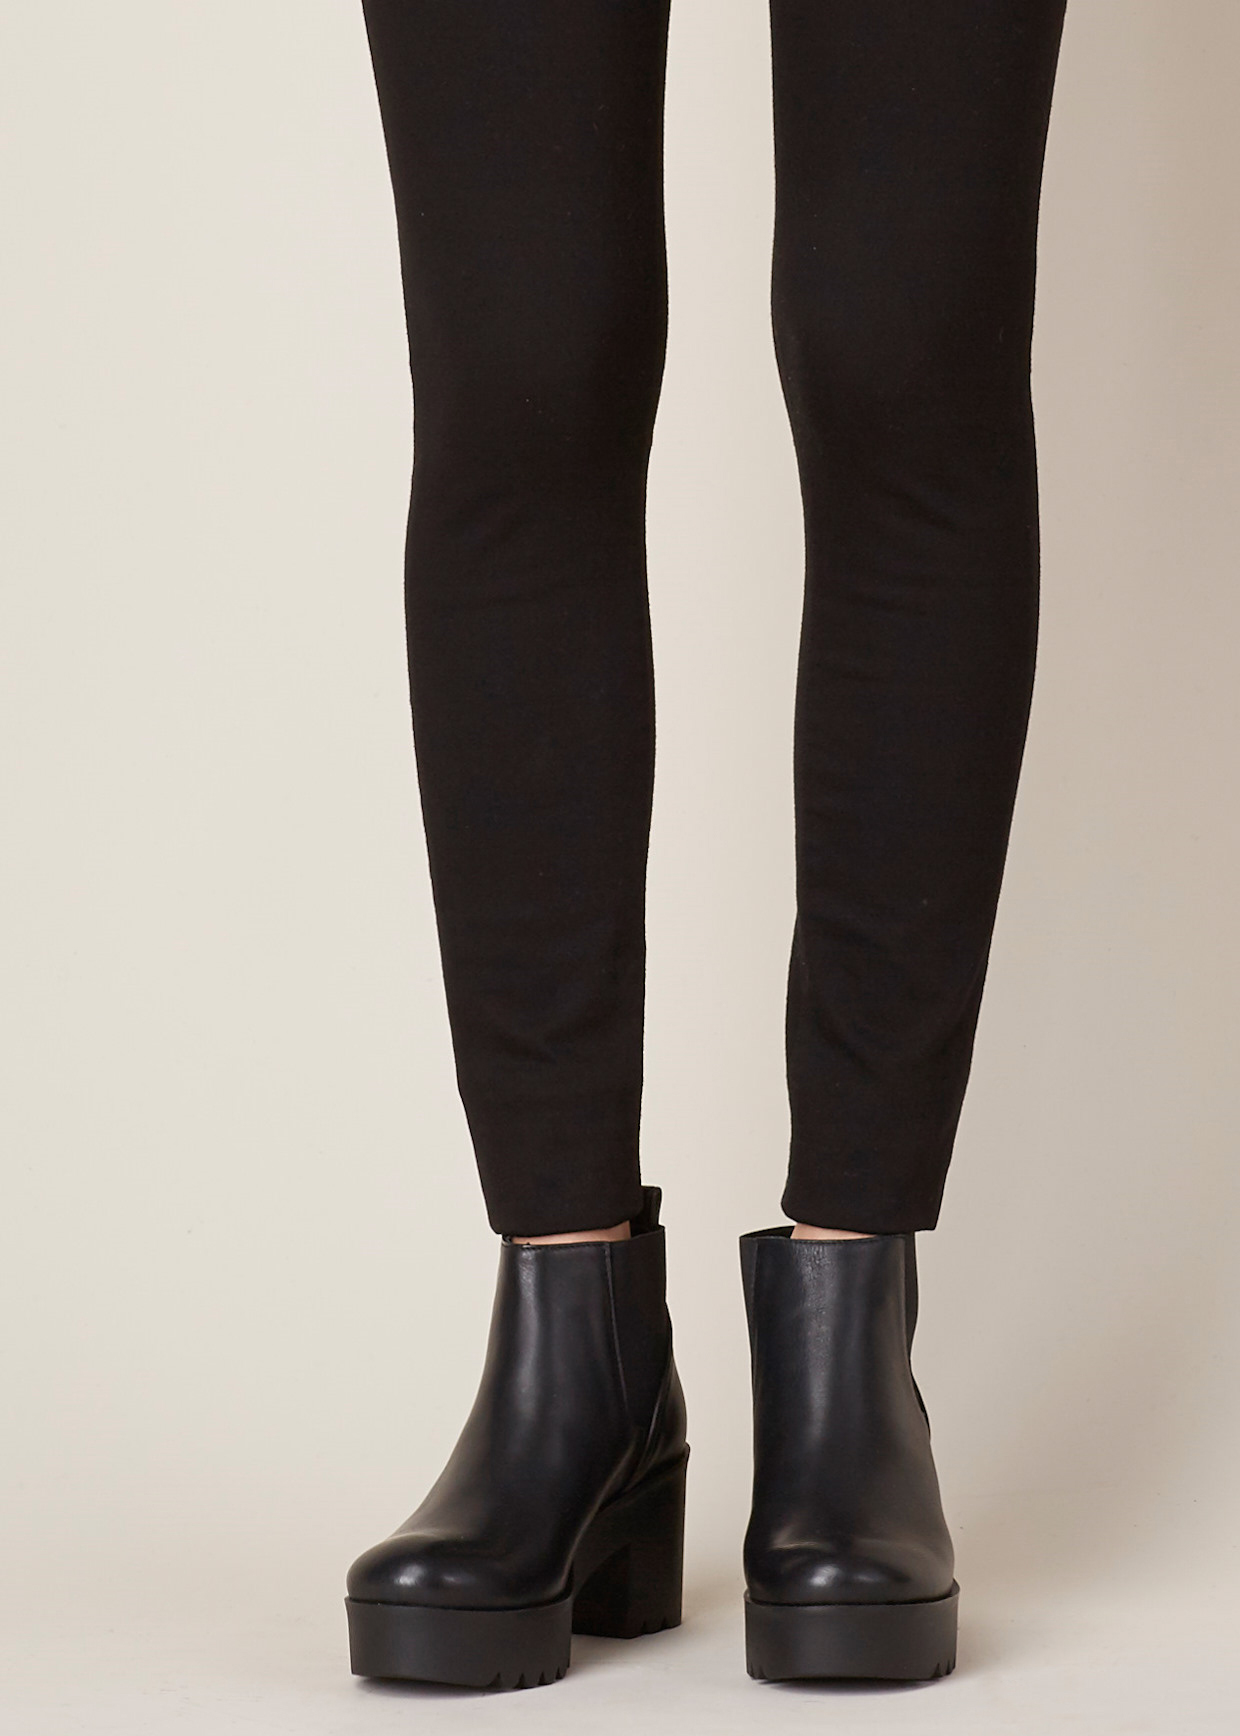 FOOTWEAR - Ankle boots Won Hundred Buy Cheap New Arrival HR5nmzNwr